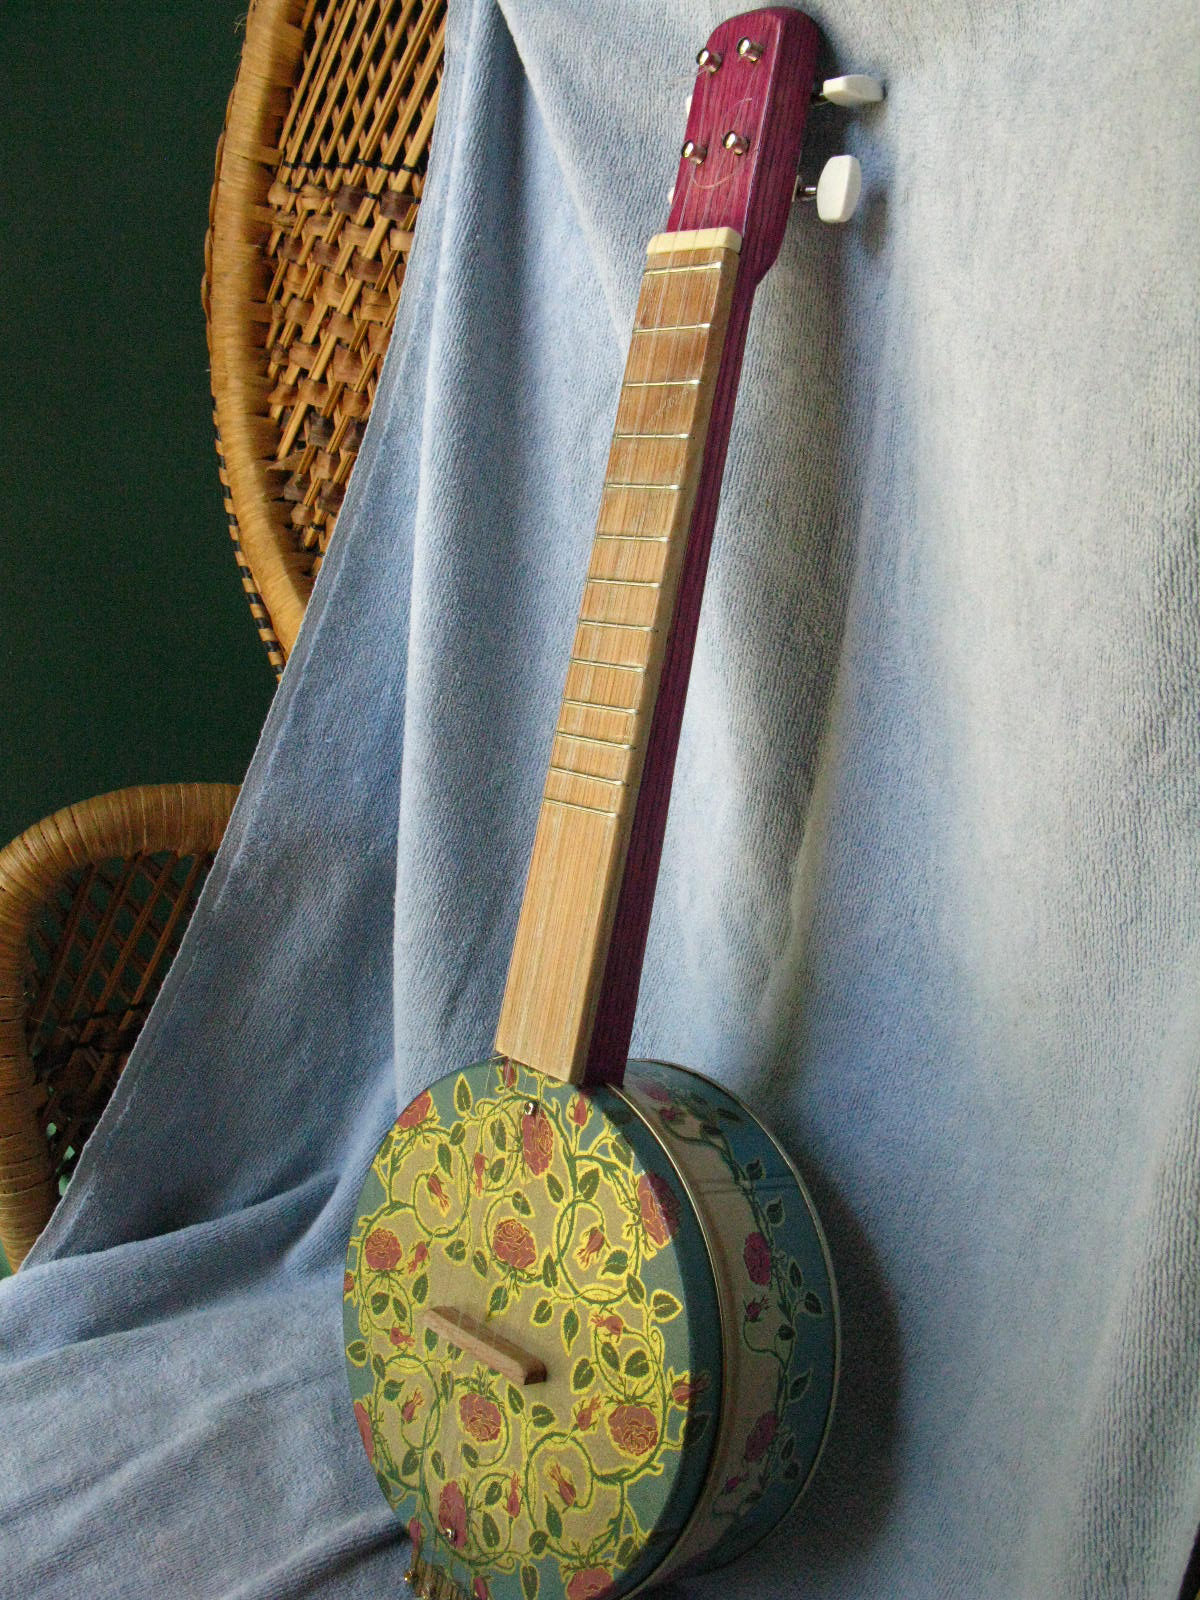 There S A Frog On My Porch Cookie Tin Ukulele